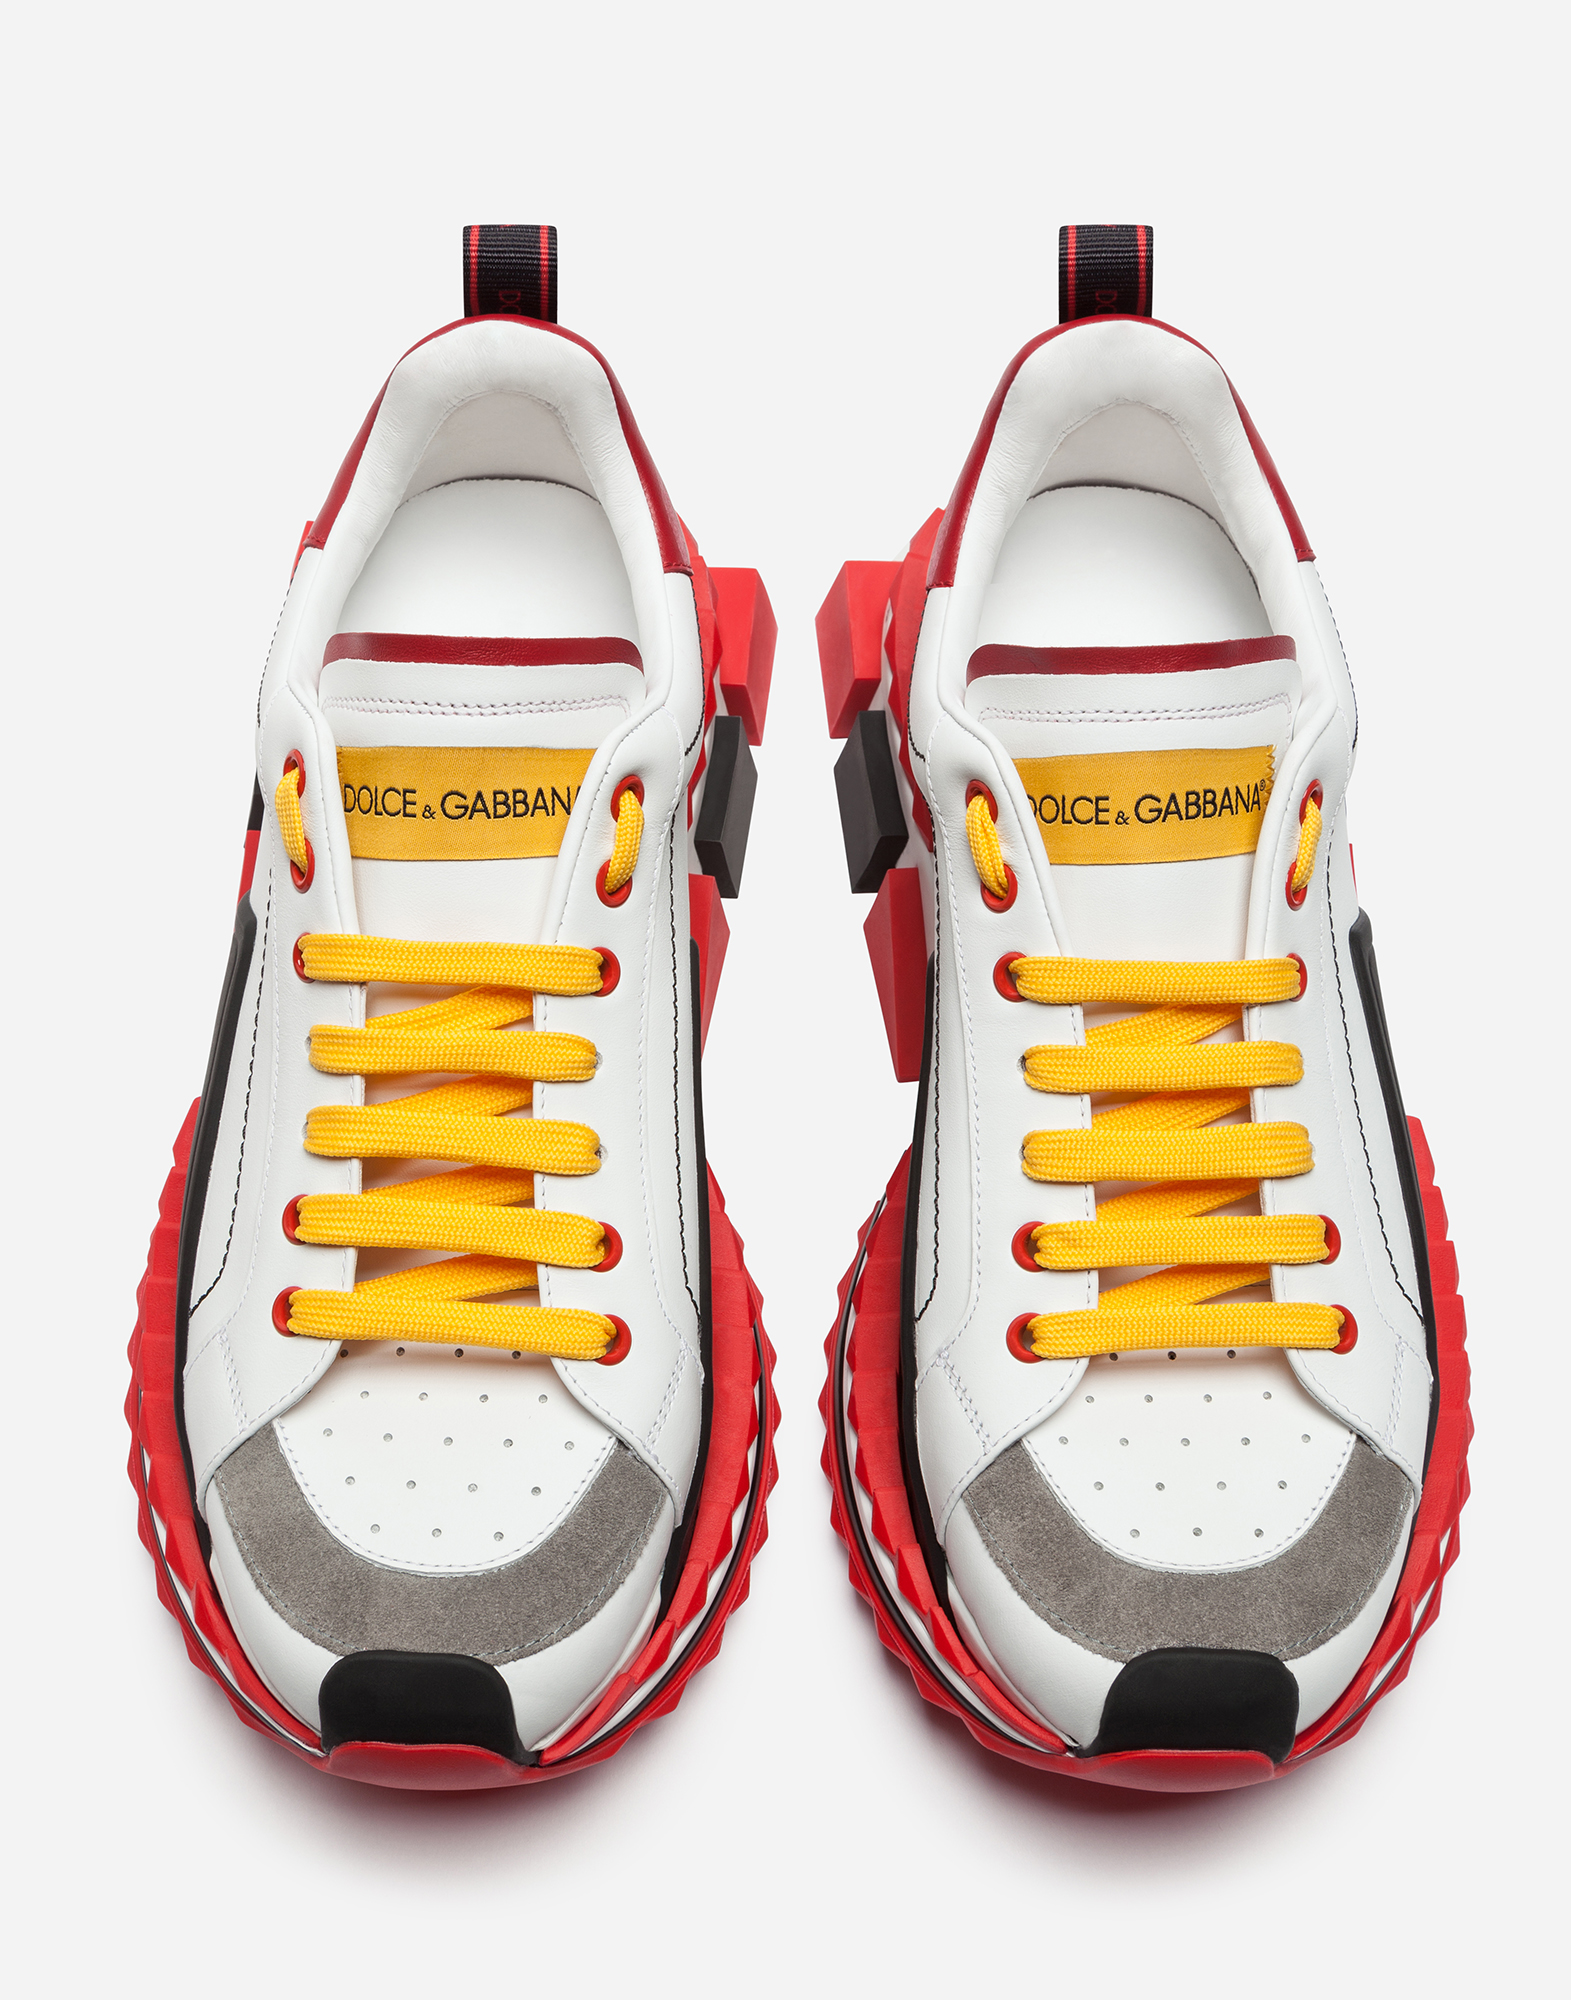 Multi Colored Super King Sneakers Men S Shoes Dolce